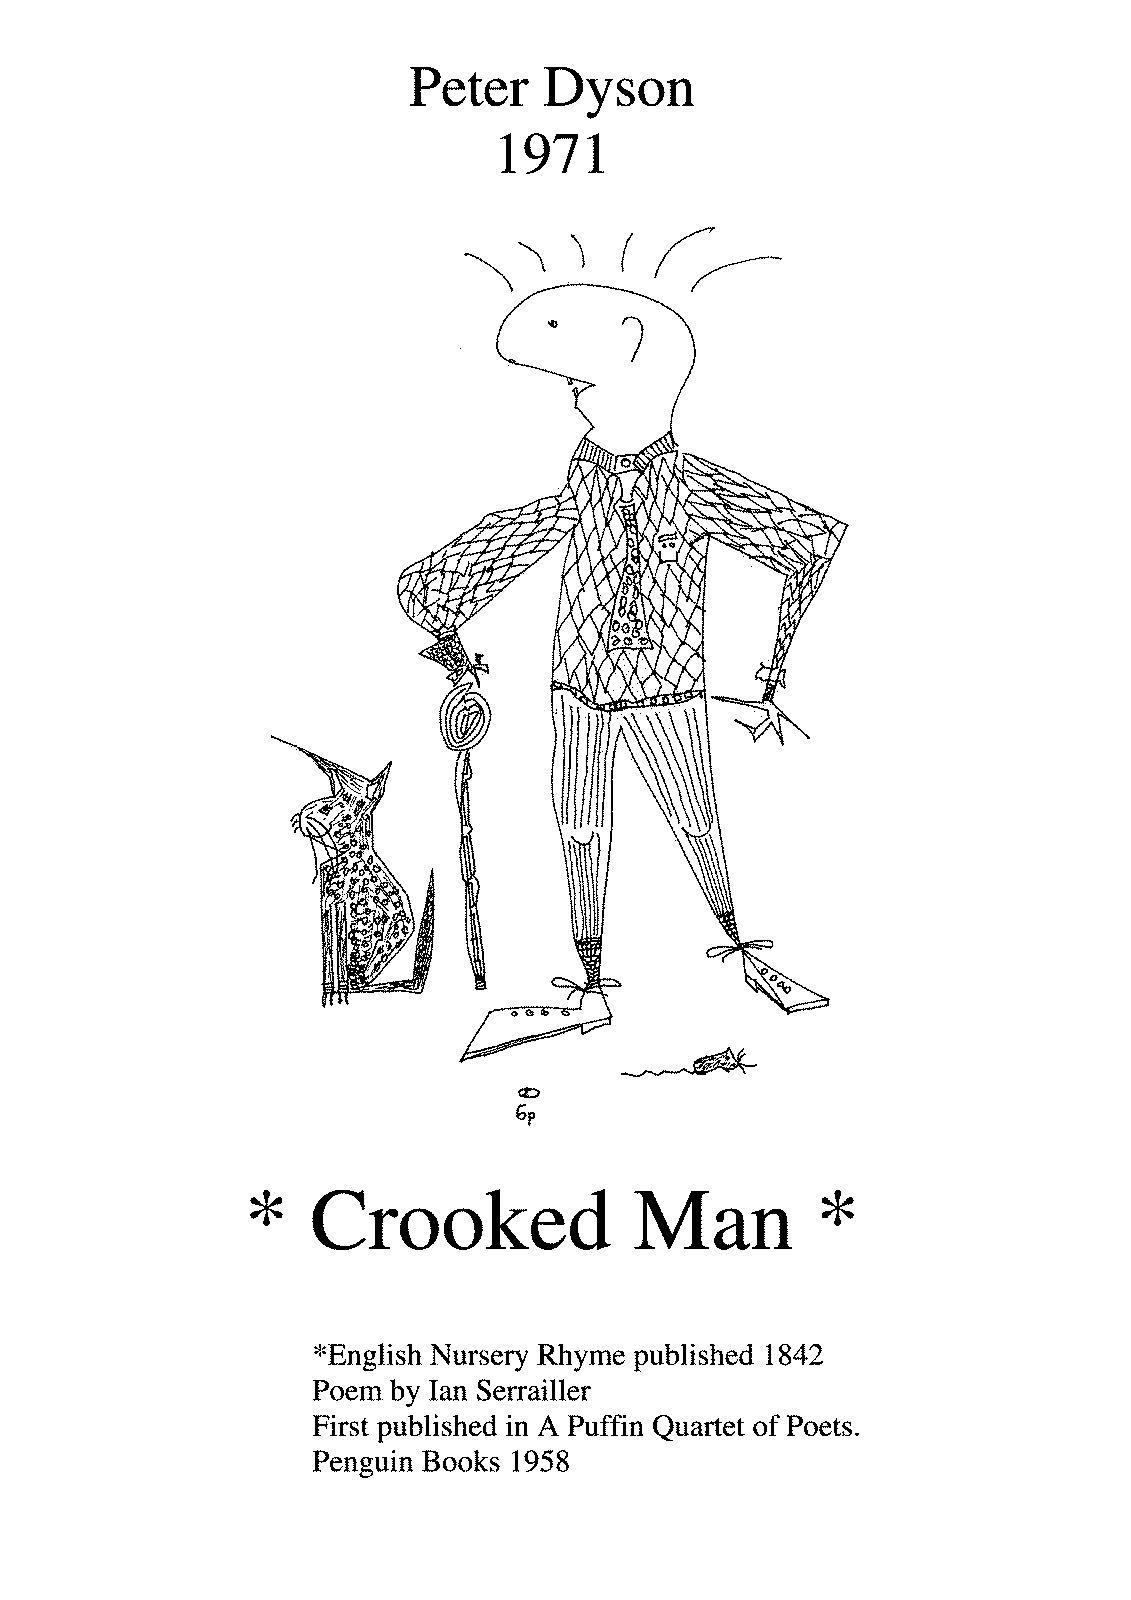 PMLP153366-Peter Dyson 1971 Crooked Man complete score version for female voices.pdf